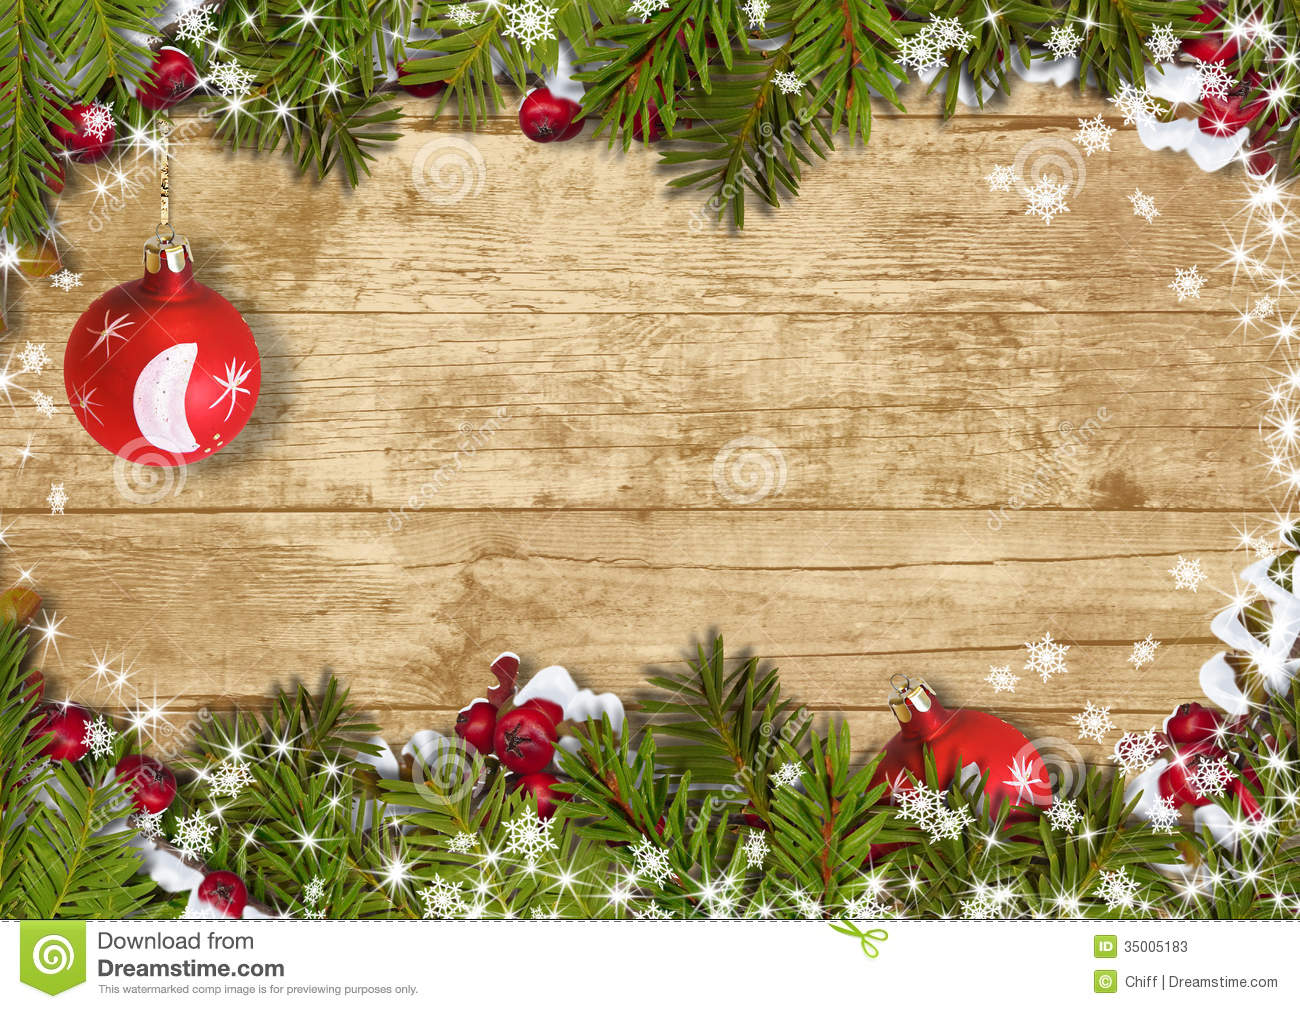 Christmas Wallpaper Border